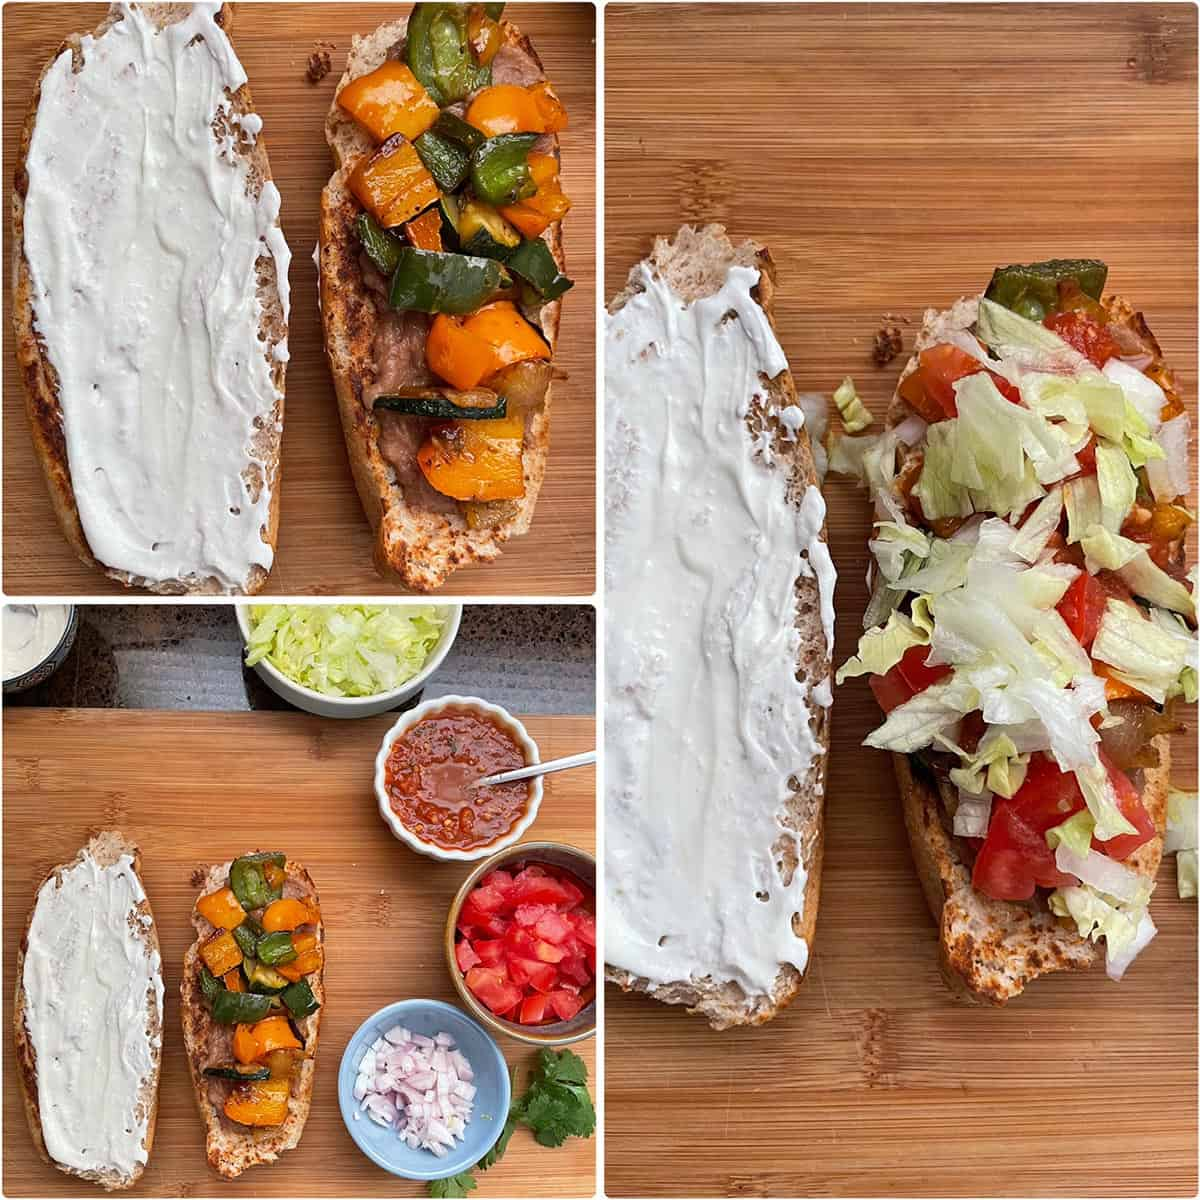 Making of Mexican sandwich - details in the recipe card